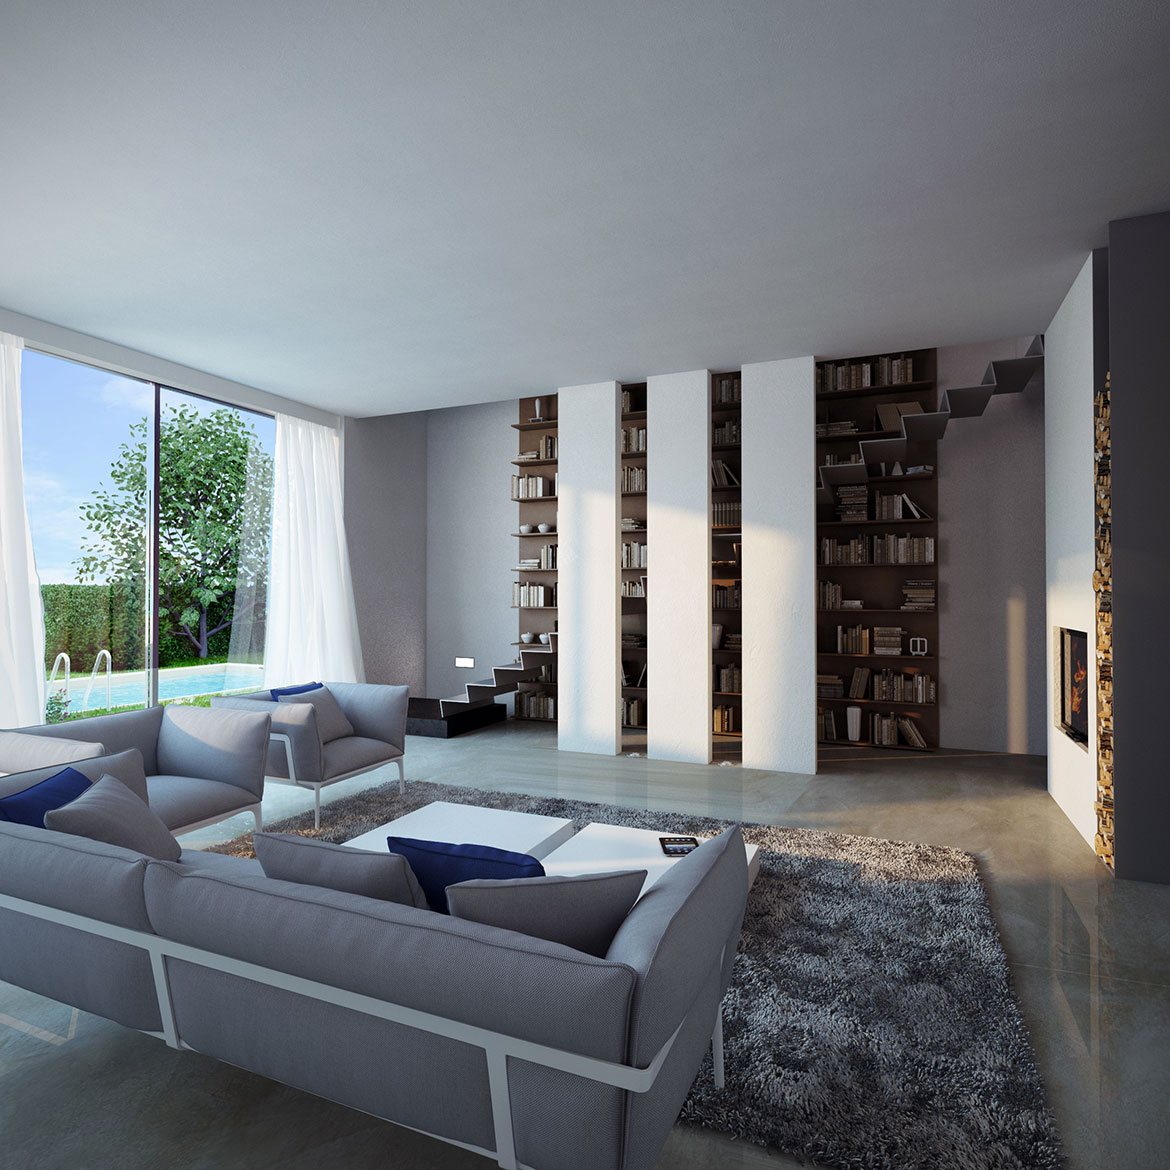 Interior design bim brescia - Interior design brescia ...